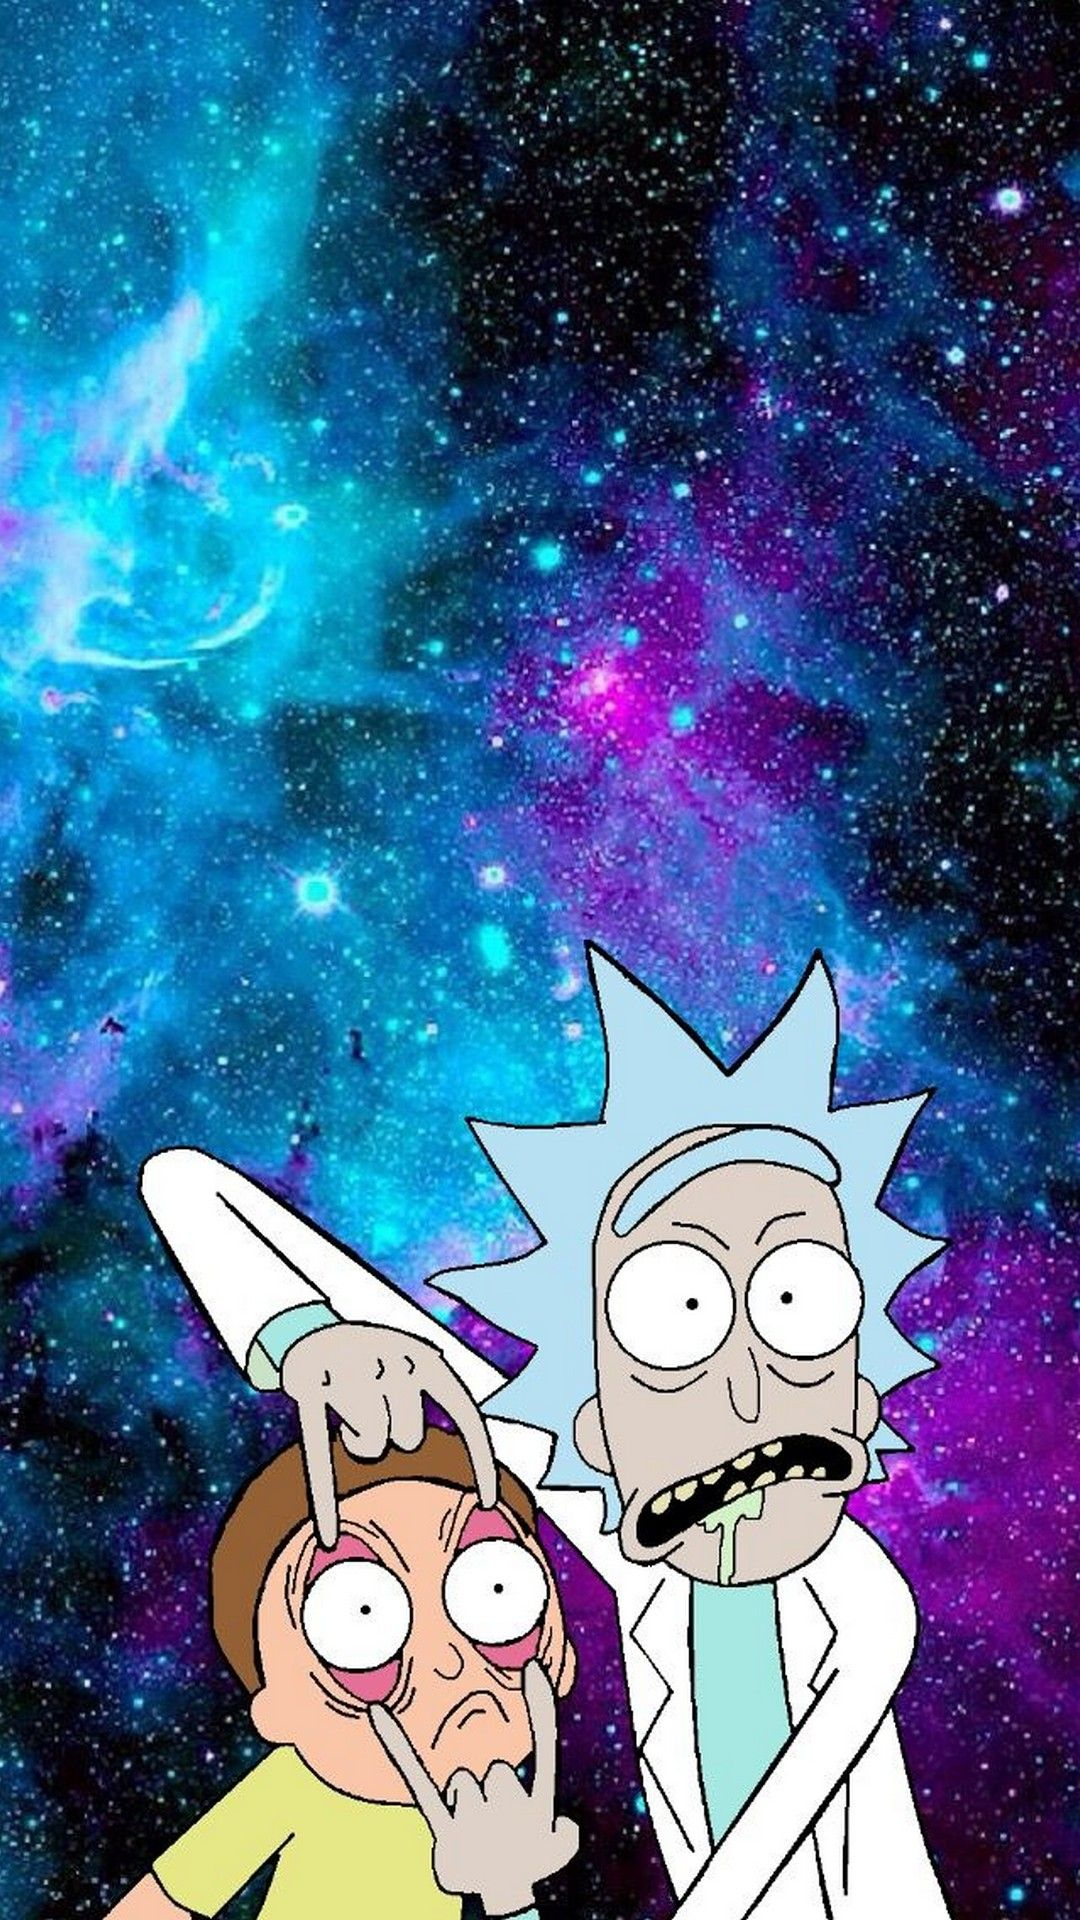 Rick And Morty Phone Wallpaper - 2018 iPhone Wallpapers | iPhoneWallpapers | Pinterest ...